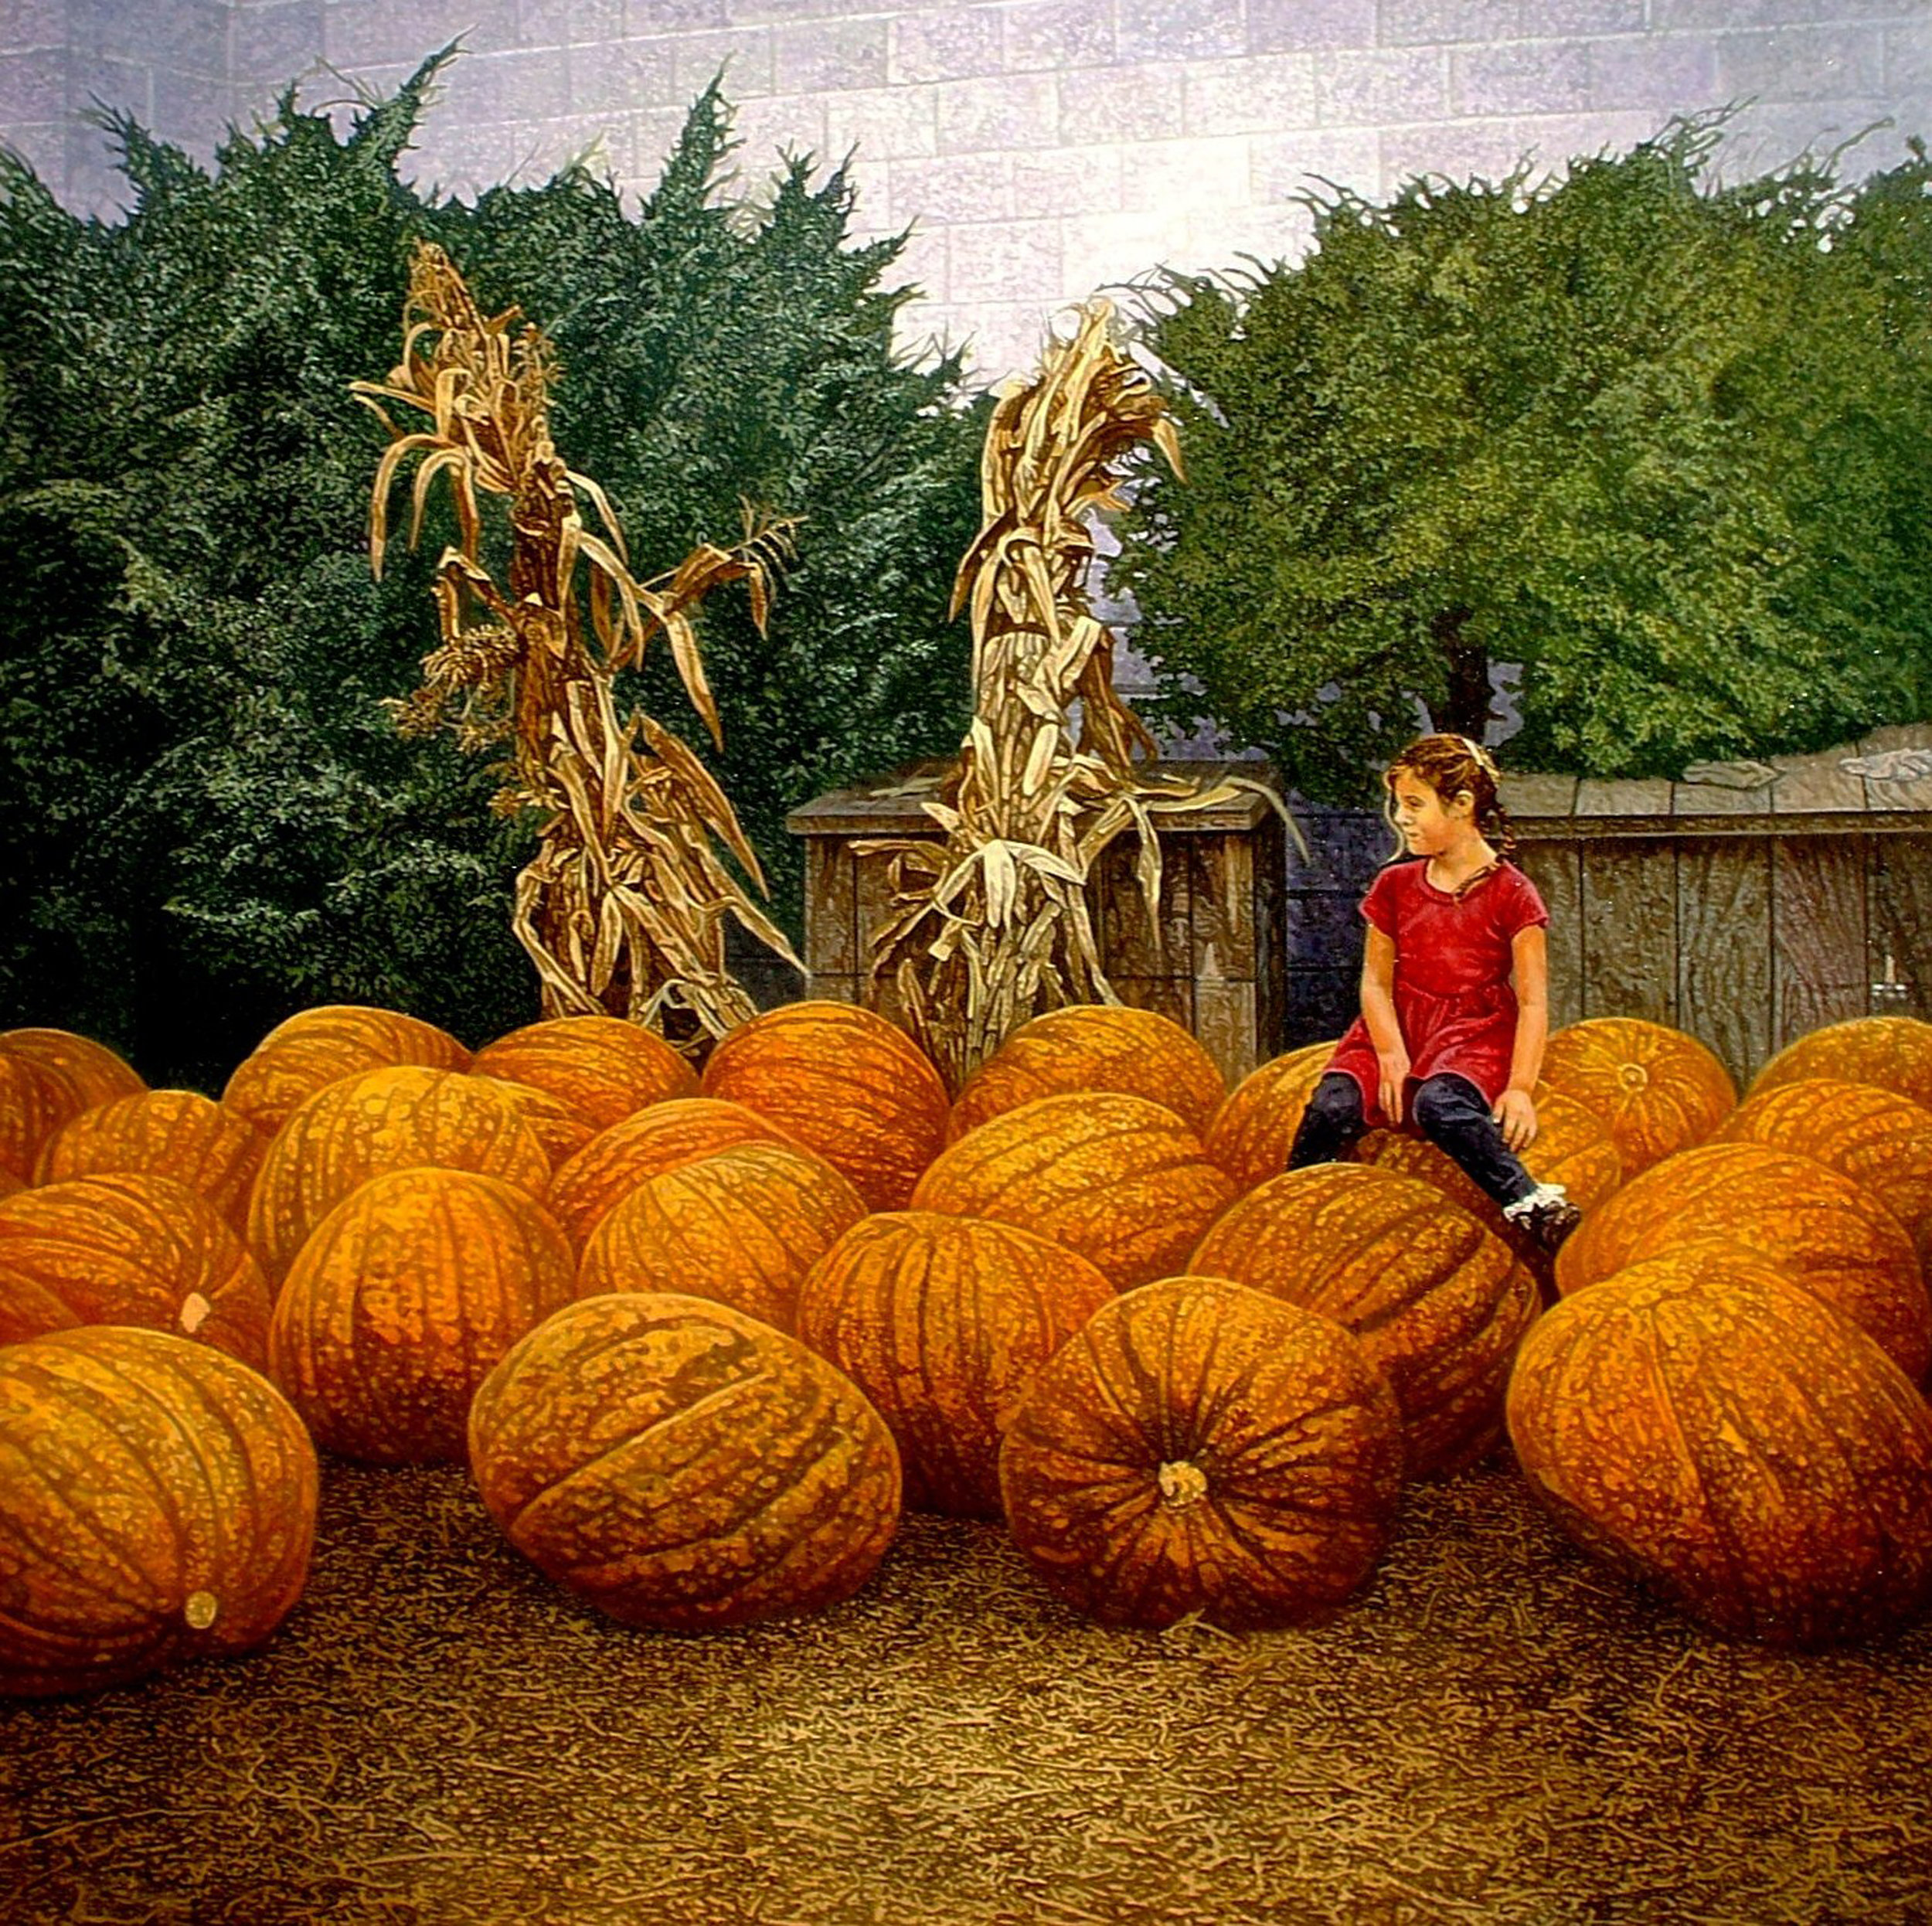 "Pumpkin Rider,  2010, Oil on canvas, 36"" x 36"".  A girl-child is balanced on a huge pumpkin in a field of hay and other large pumpkins."